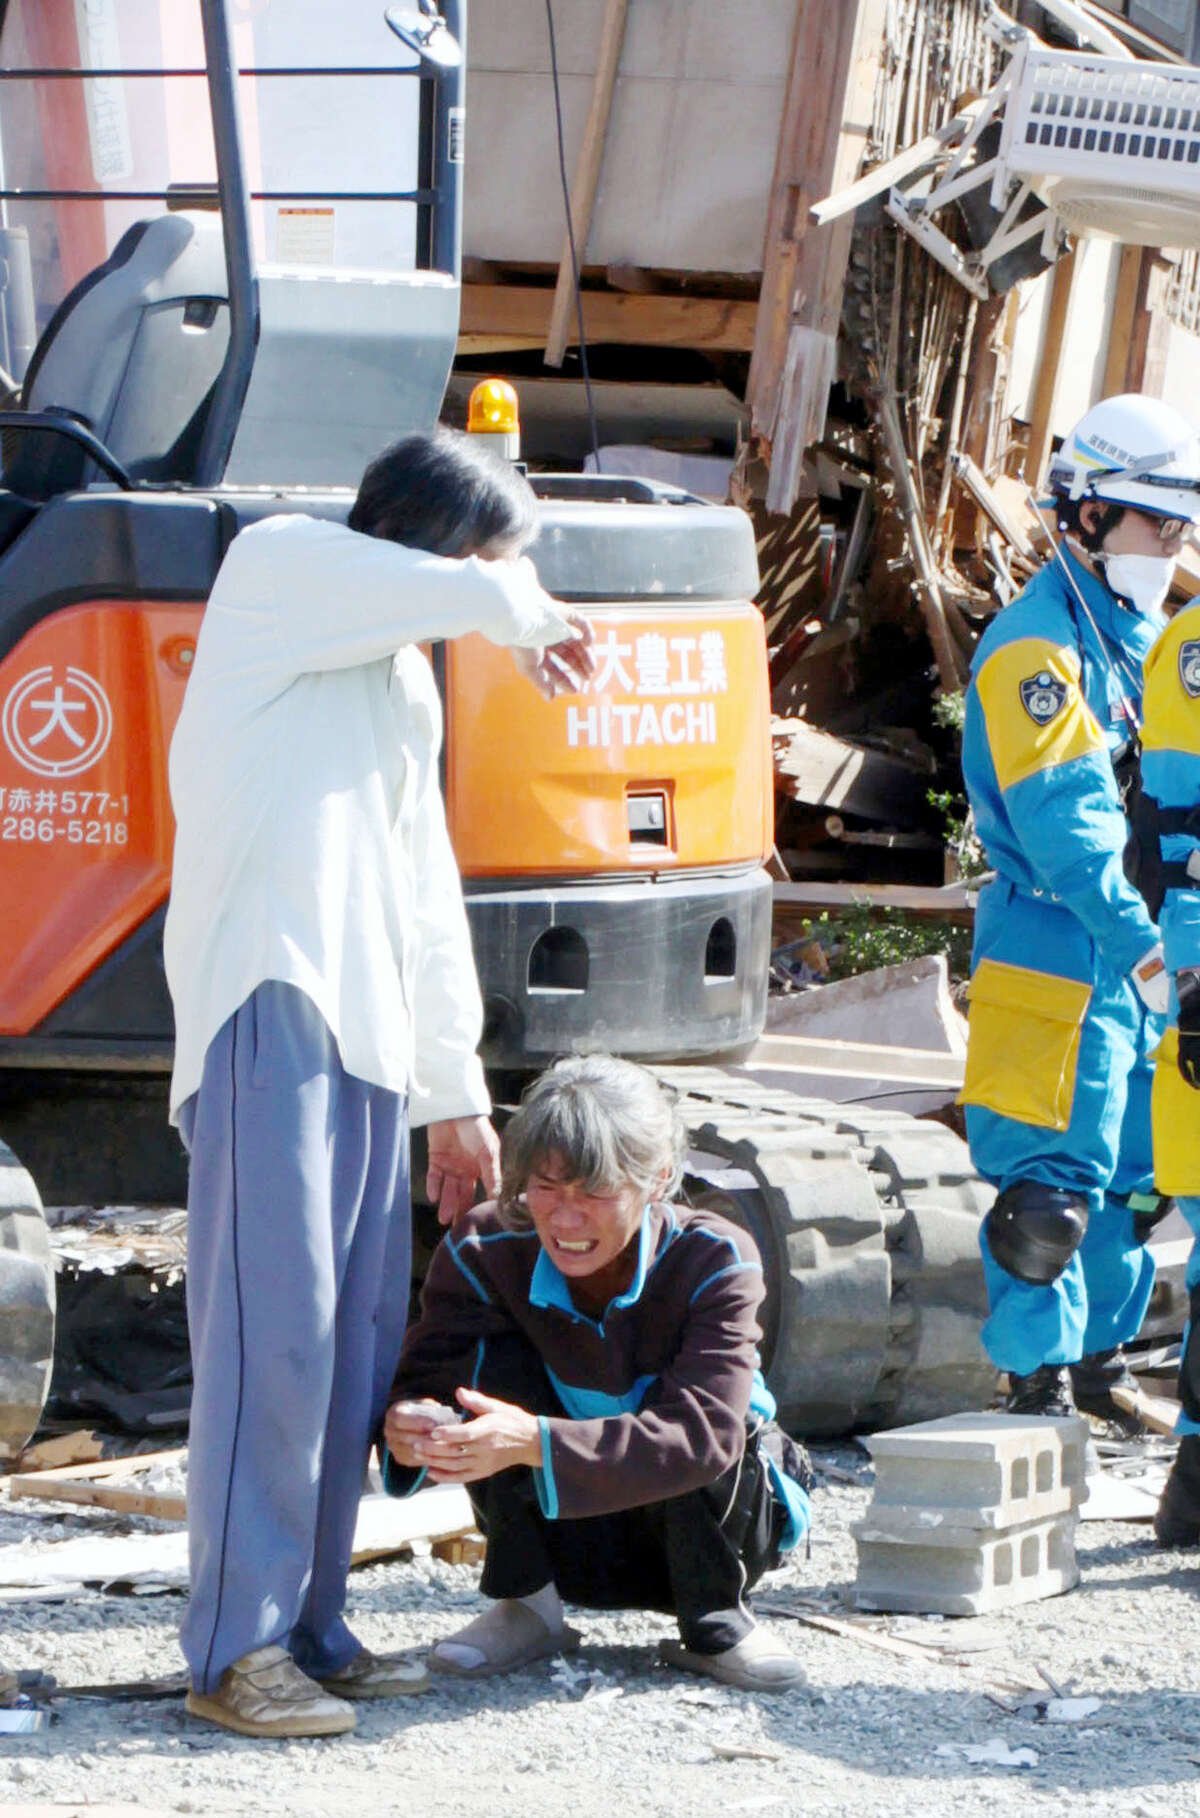 Parents cry as they confirm that their daughter was found dead after an earthquake in Mashiki, Kumamoto prefecture, southern Japan Saturday, April 16, 2016. A major quake shook southwestern Japan, barely a day after another quake hit the same region.